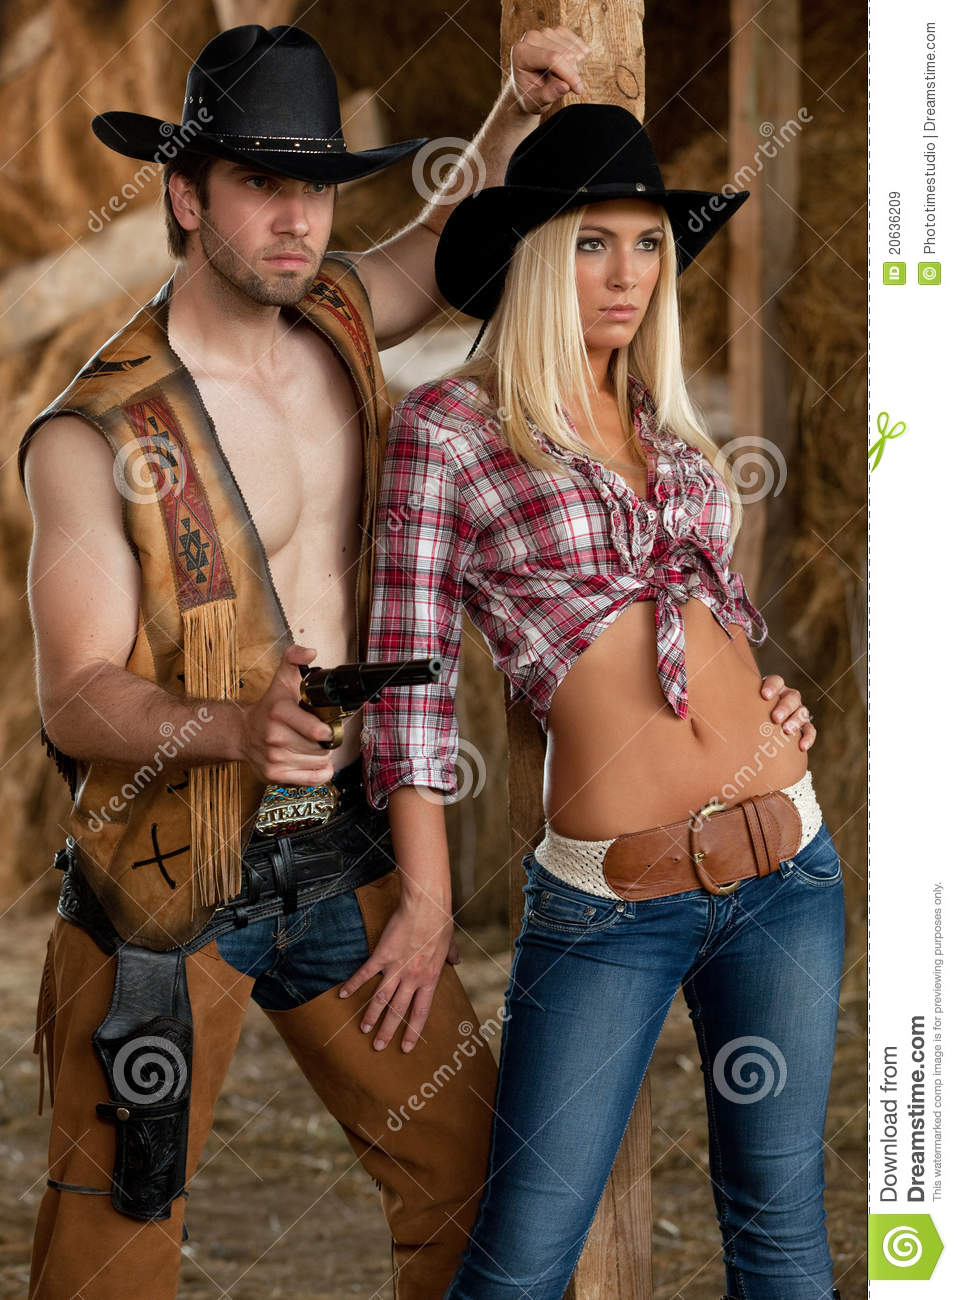 Cowboy and the blonde movie